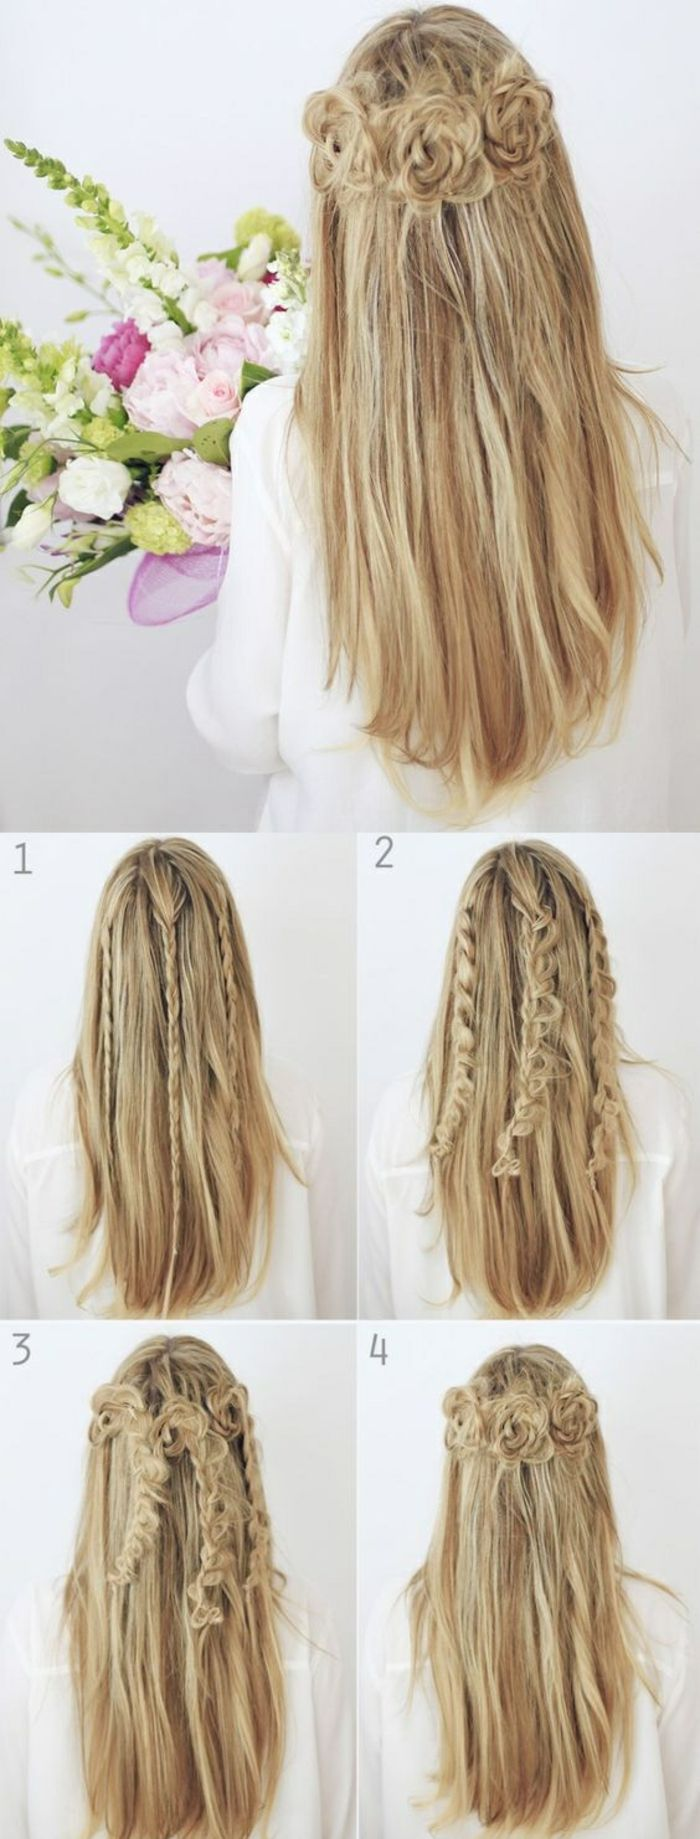 ▷ 1001+ Ideas and instructions on how to make braided hairstyles yourself